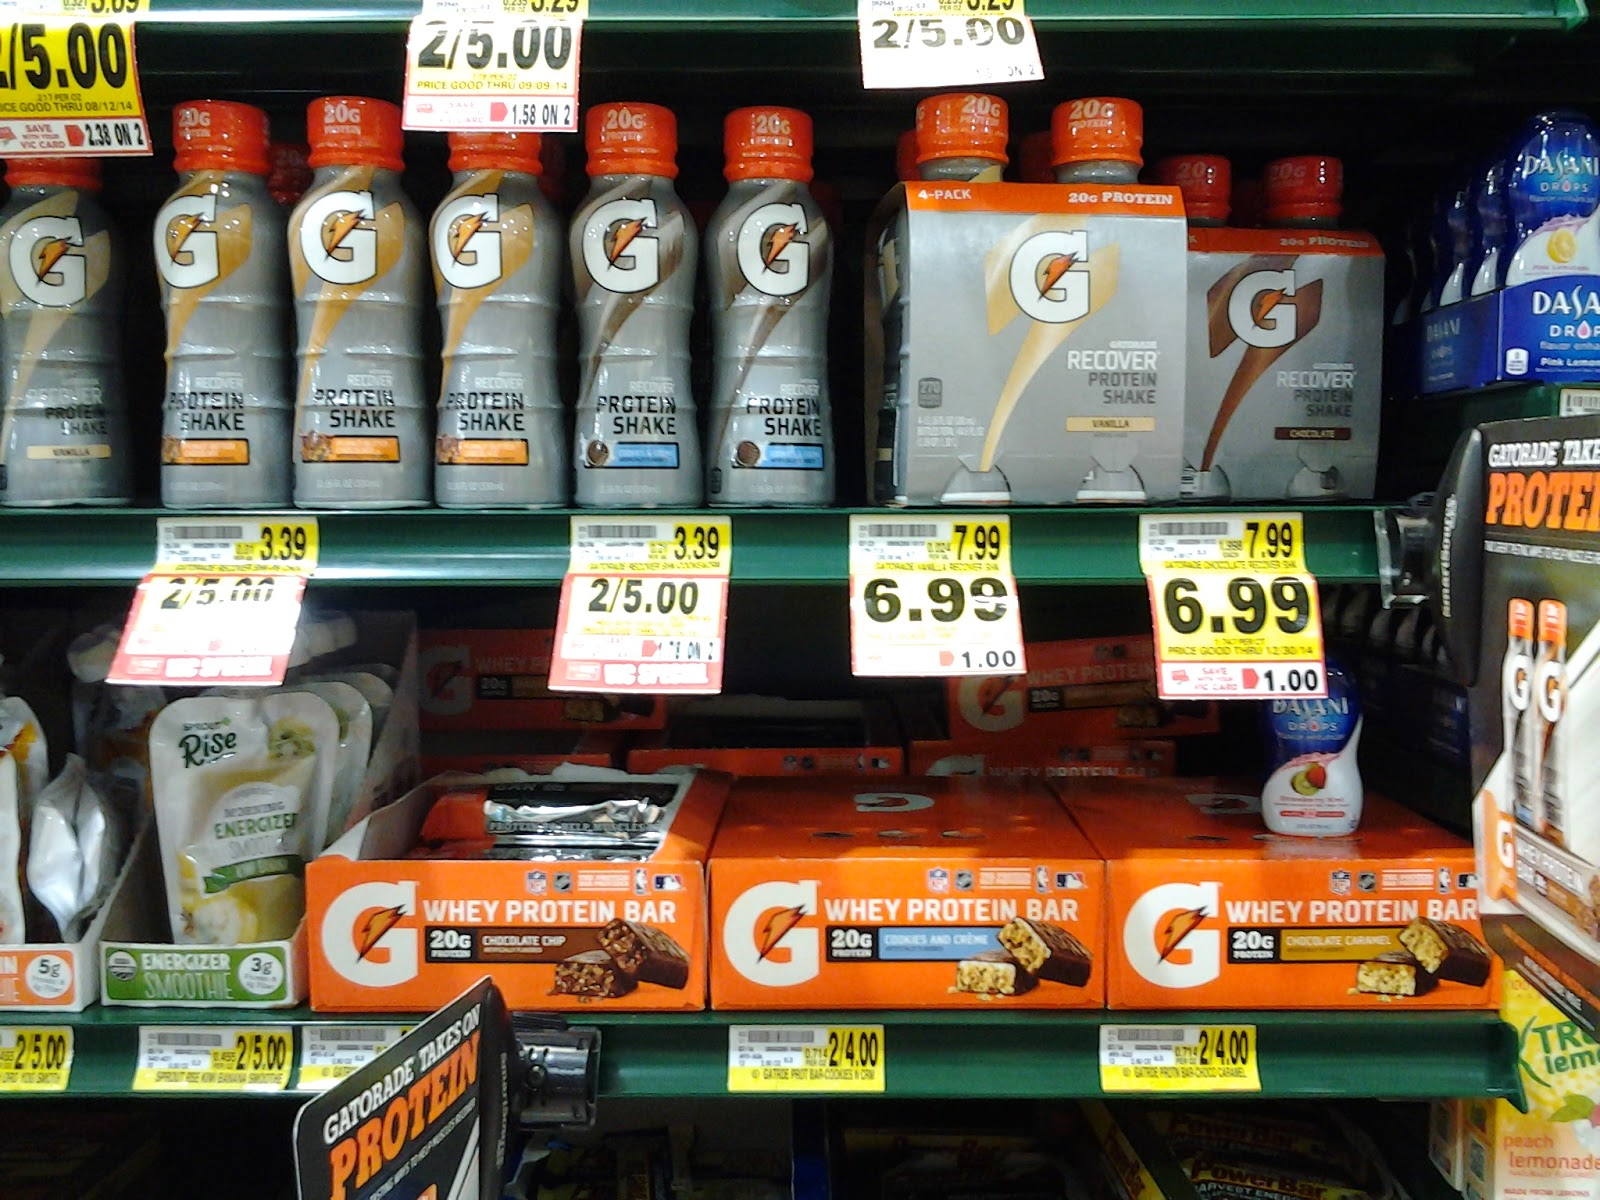 photograph regarding Gatorade Coupons Printable titled 50 cents off gatorade coupon codes - Momma bargains